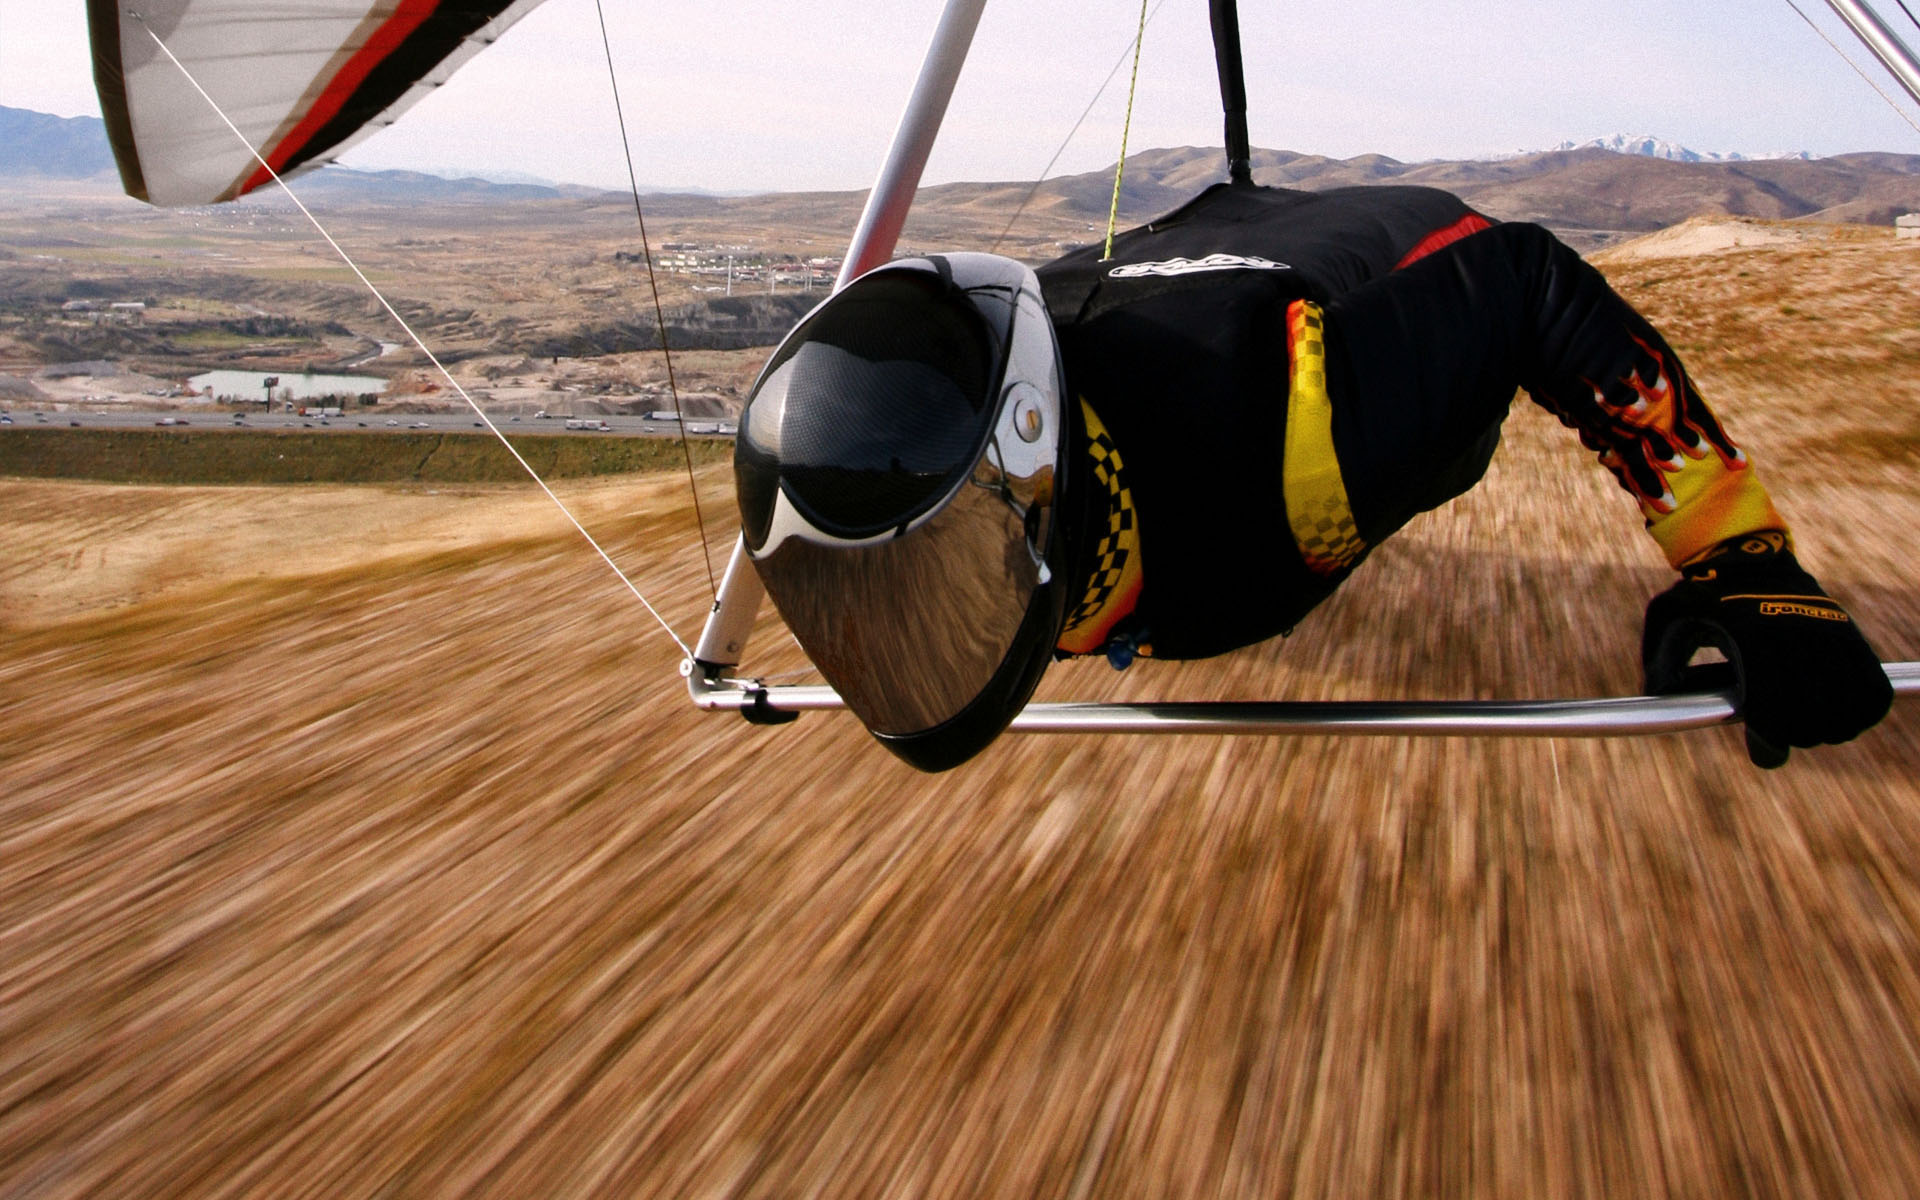 1920x1200 - Hang Gliding Wallpapers 3